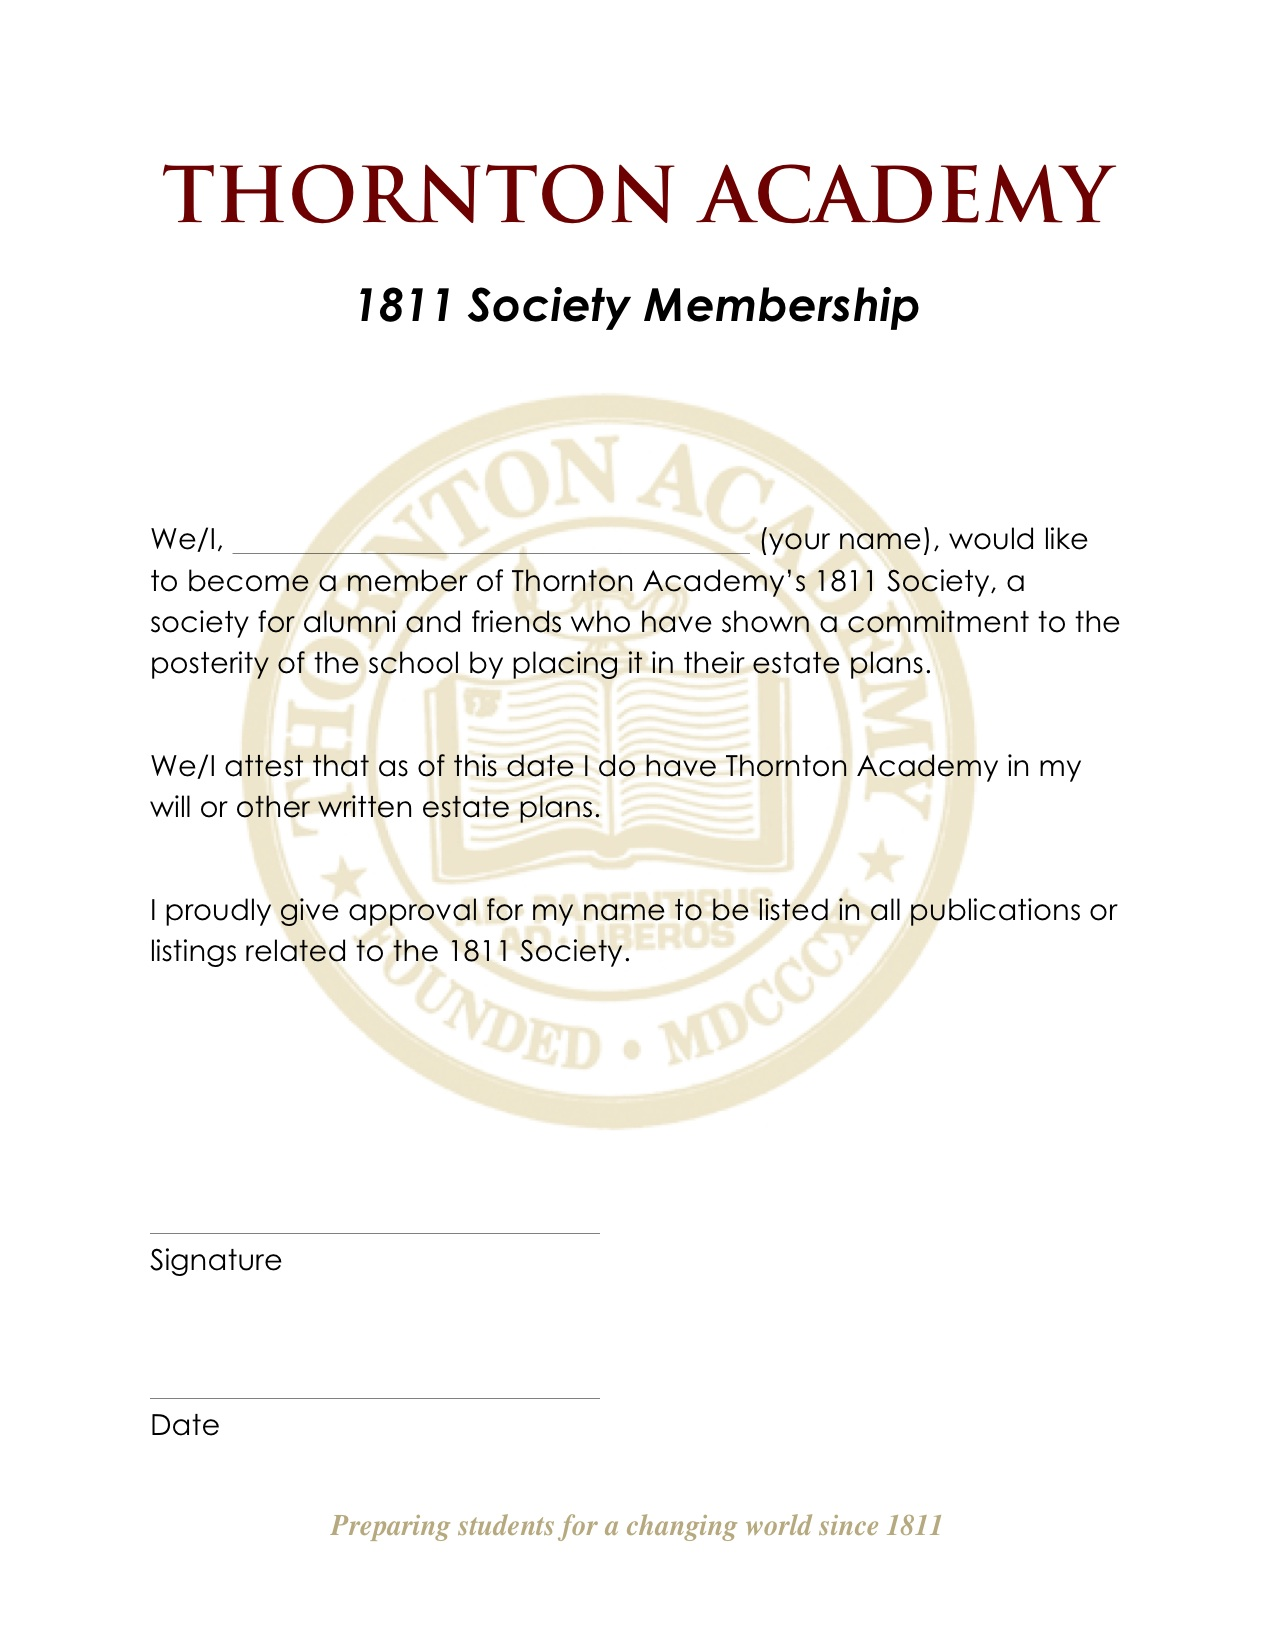 To become a member, fill out this form and return to the Development Office at TA.